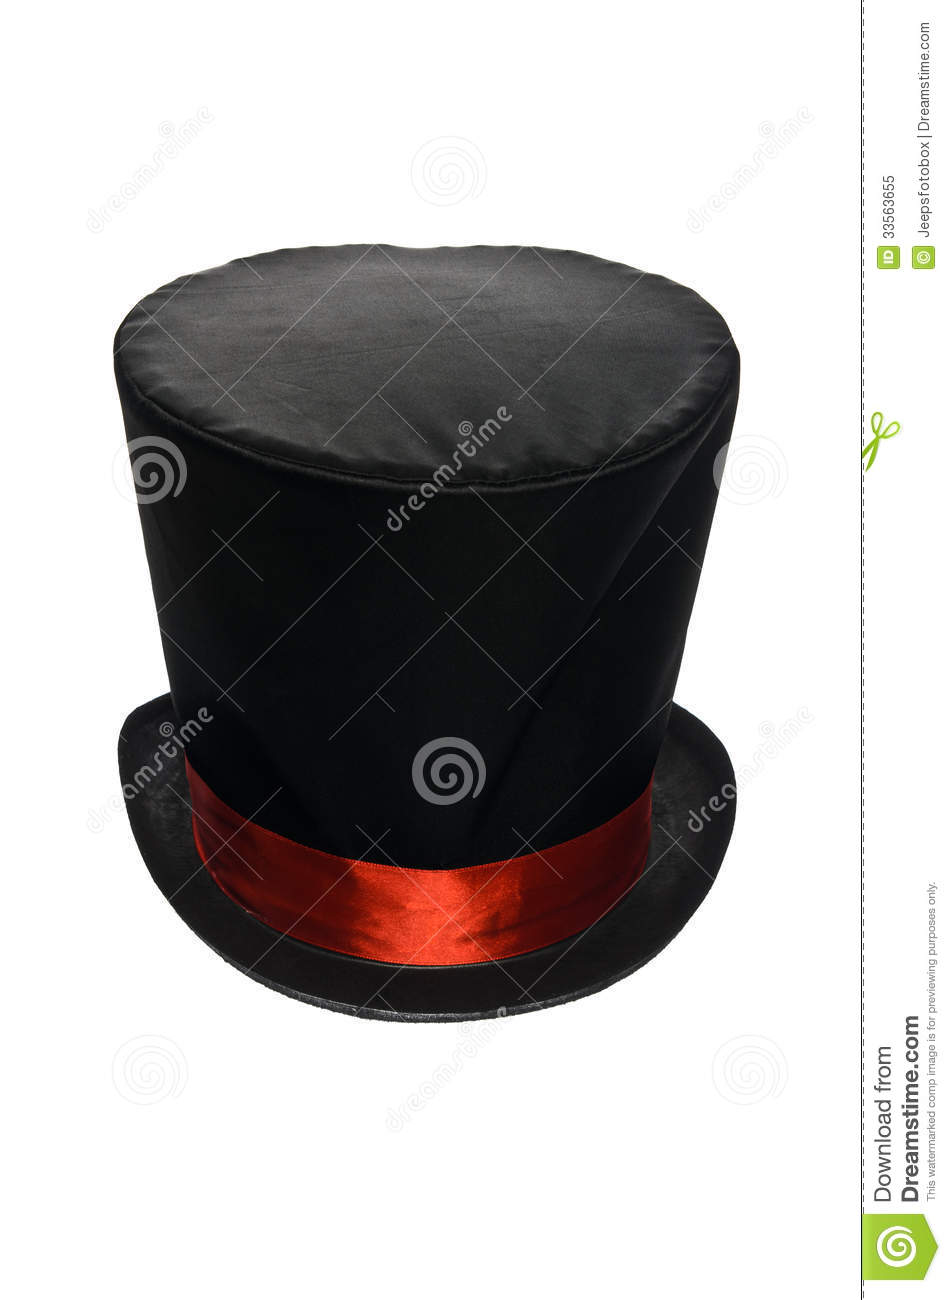 079932d4a5a Black Top Hat With Red Ribbon Stock Image - Image of white